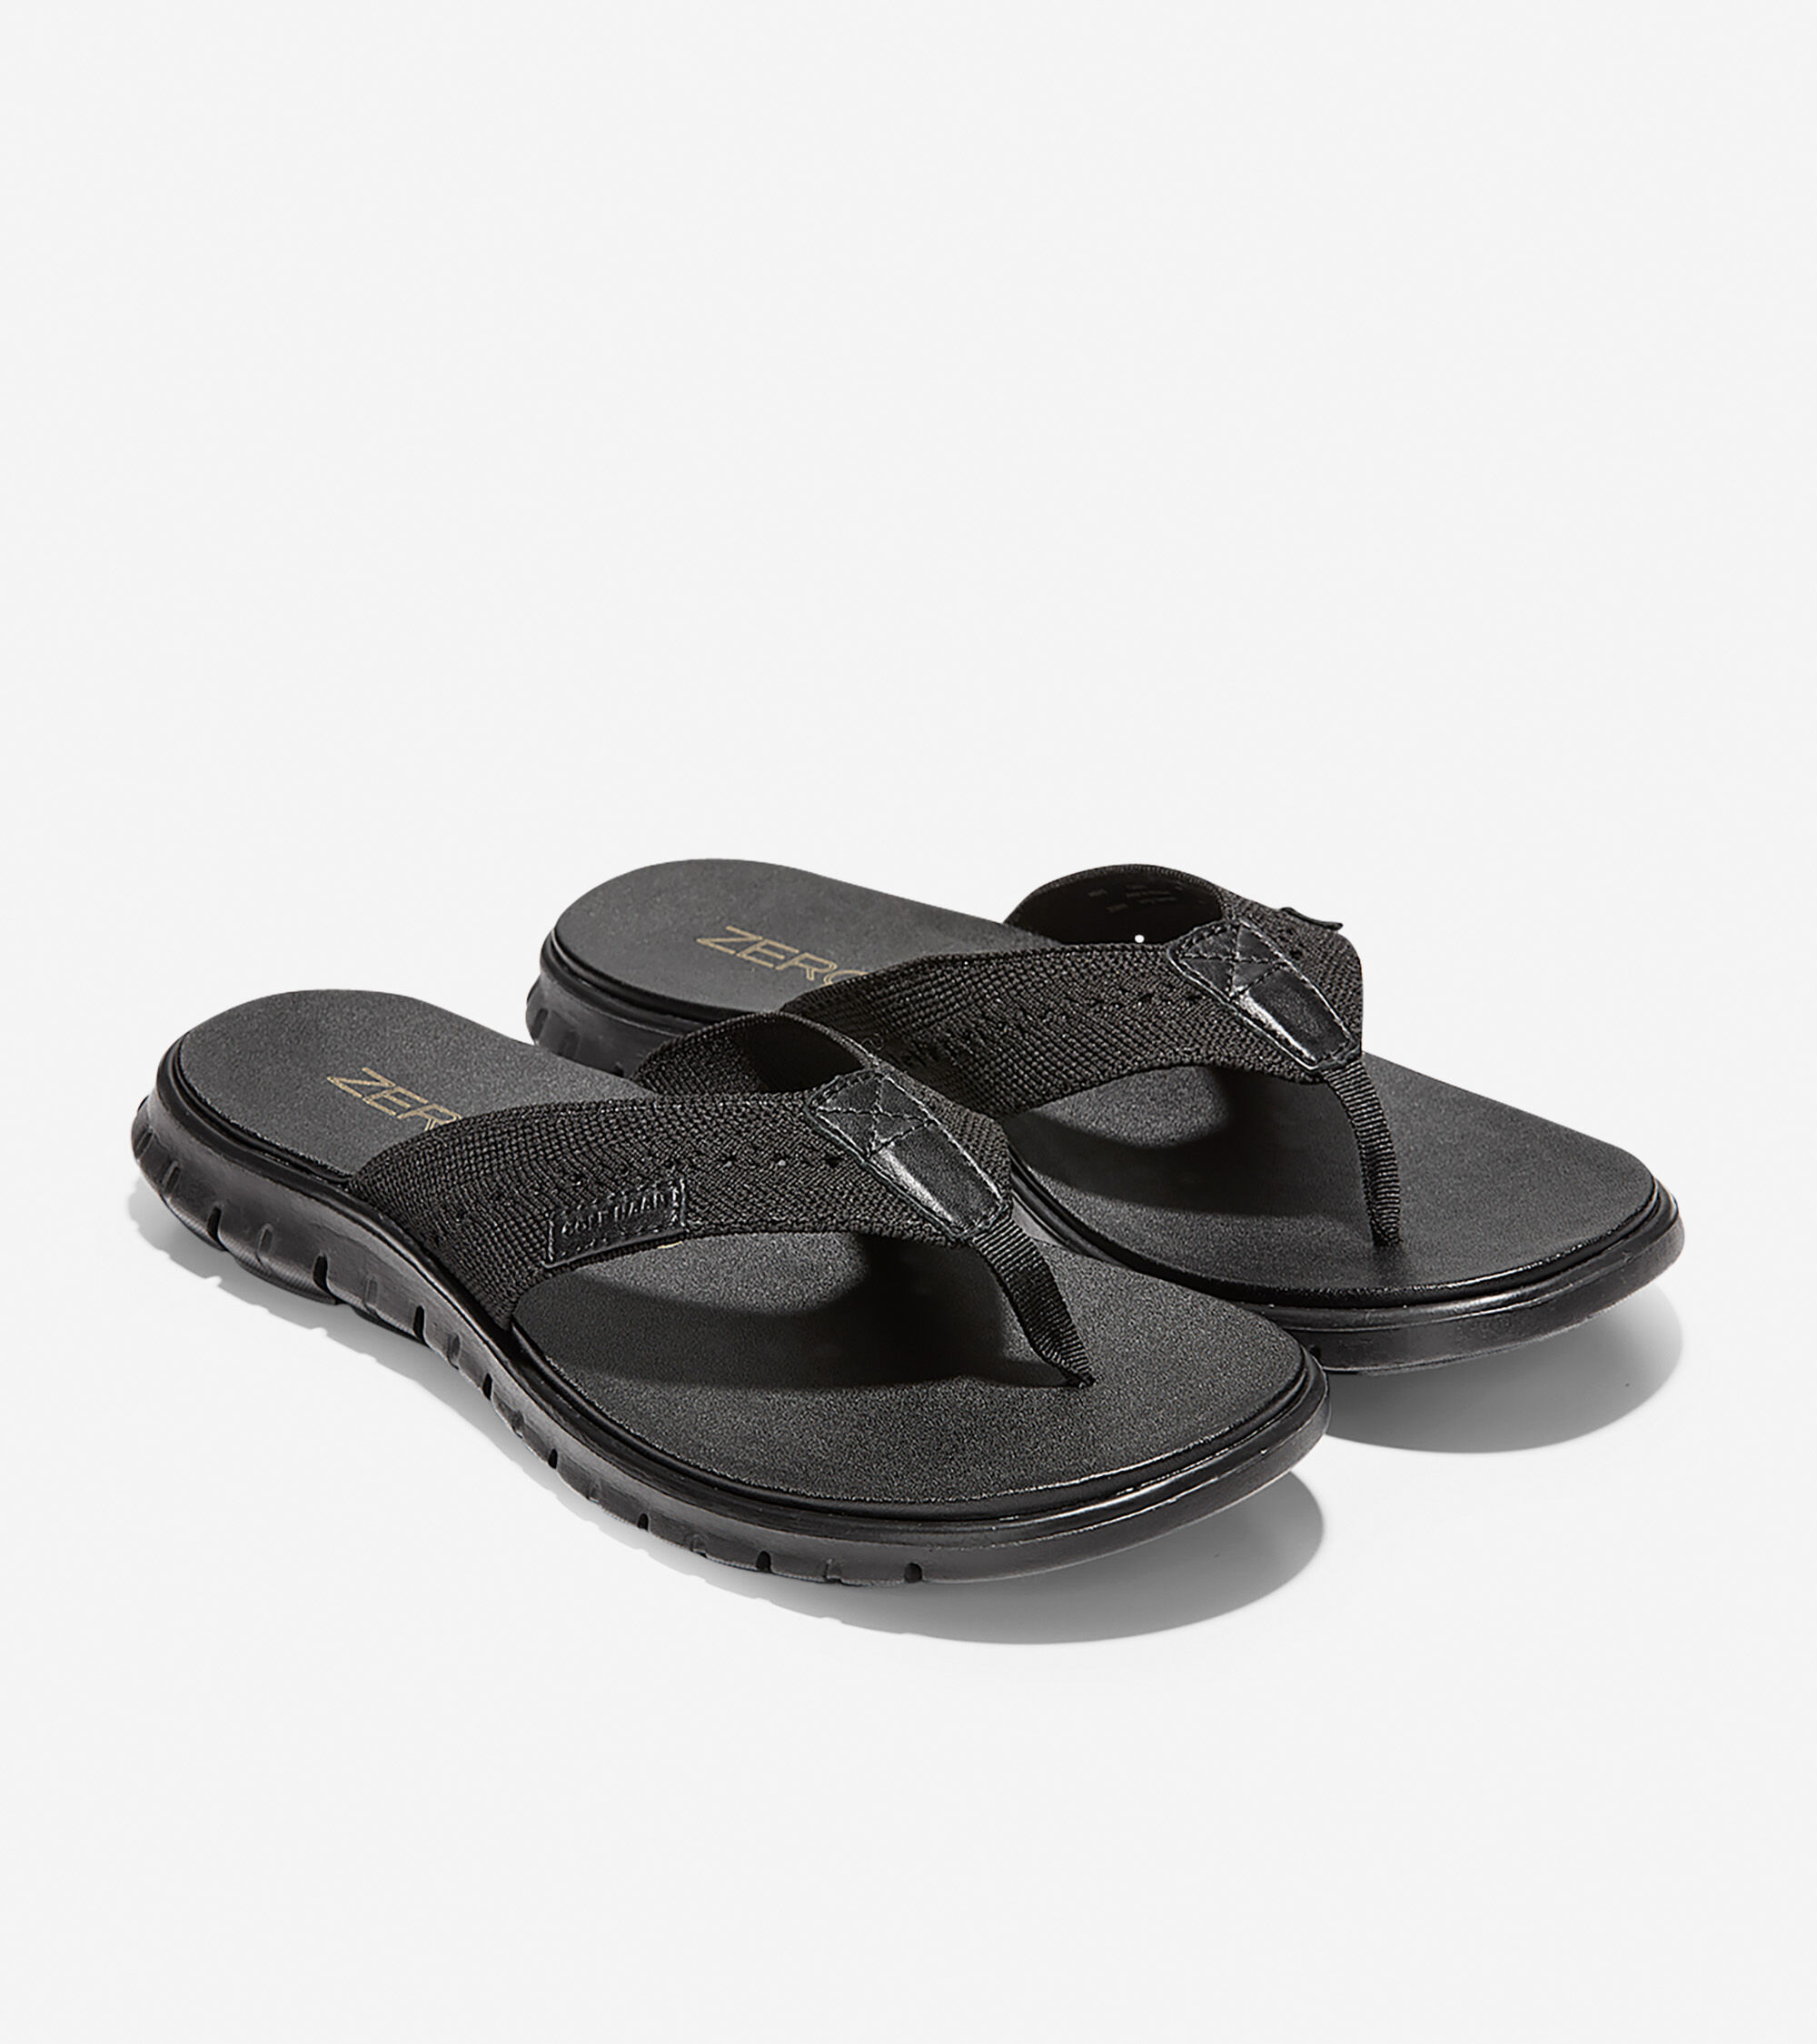 d038d7be384b Men s ZEROGRAND Thong Sandals with Stitchlite™ in Black